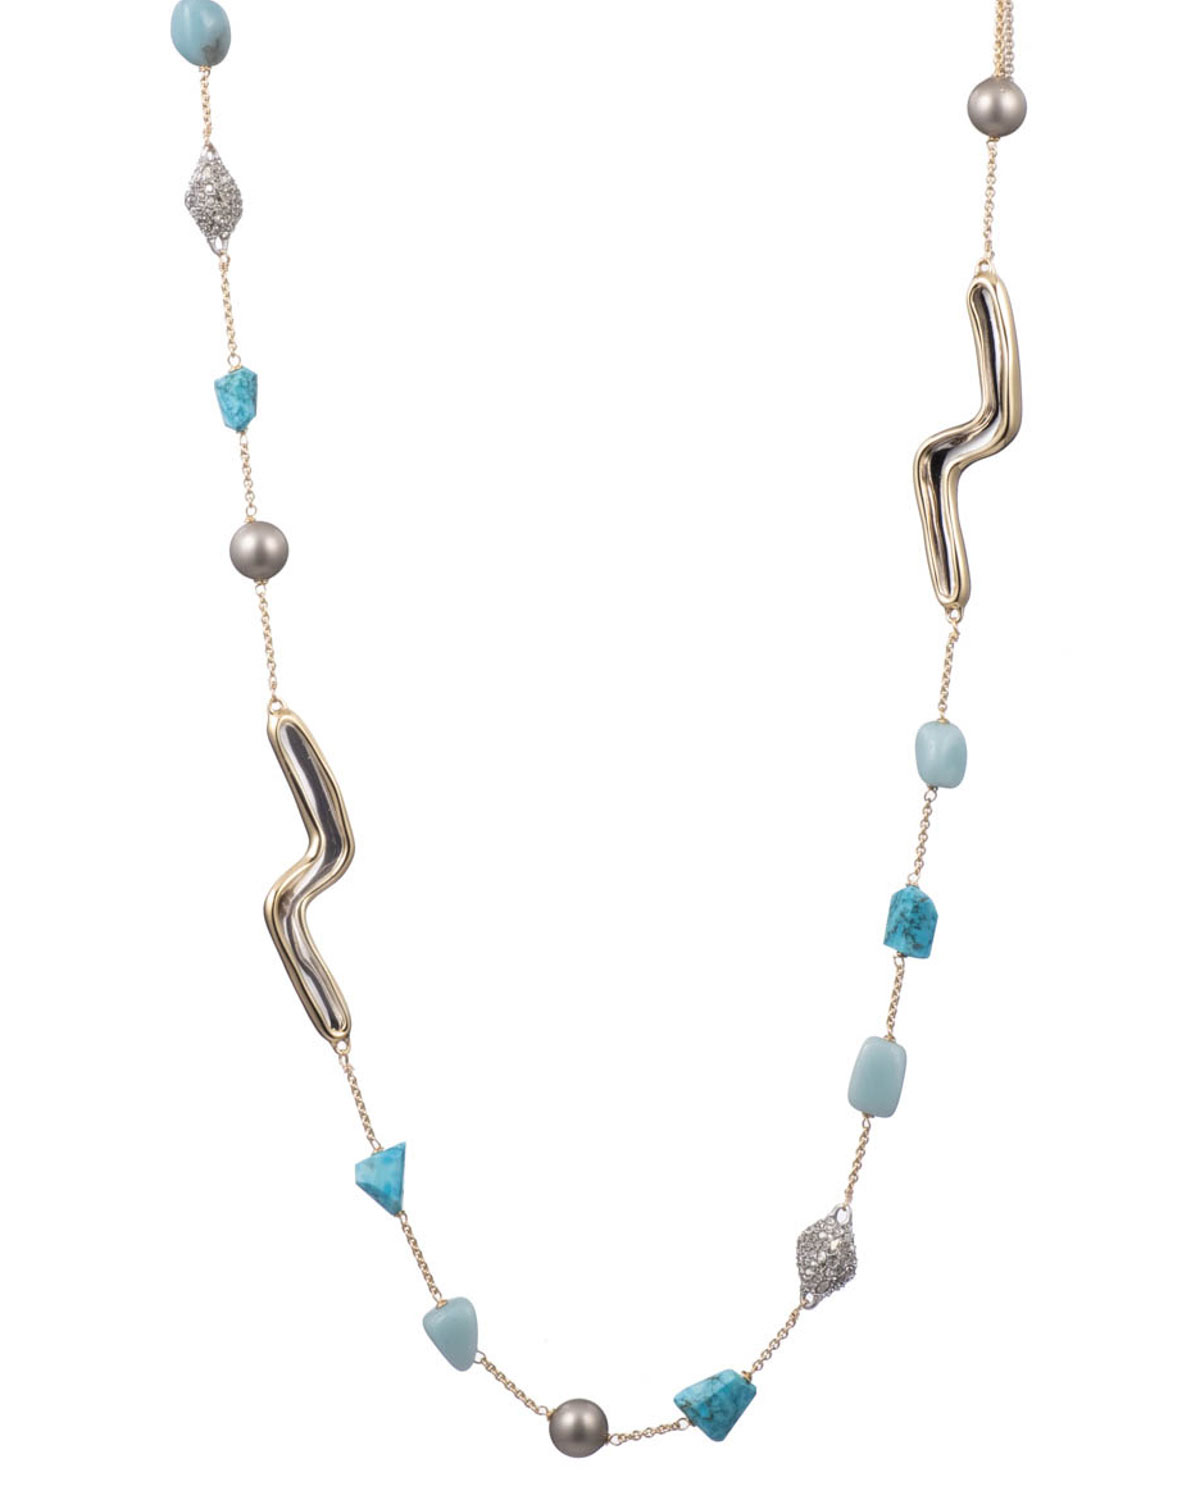 Alexis Bittar Accessories TWO-TONE SCULPTURAL STATION NECKLACE